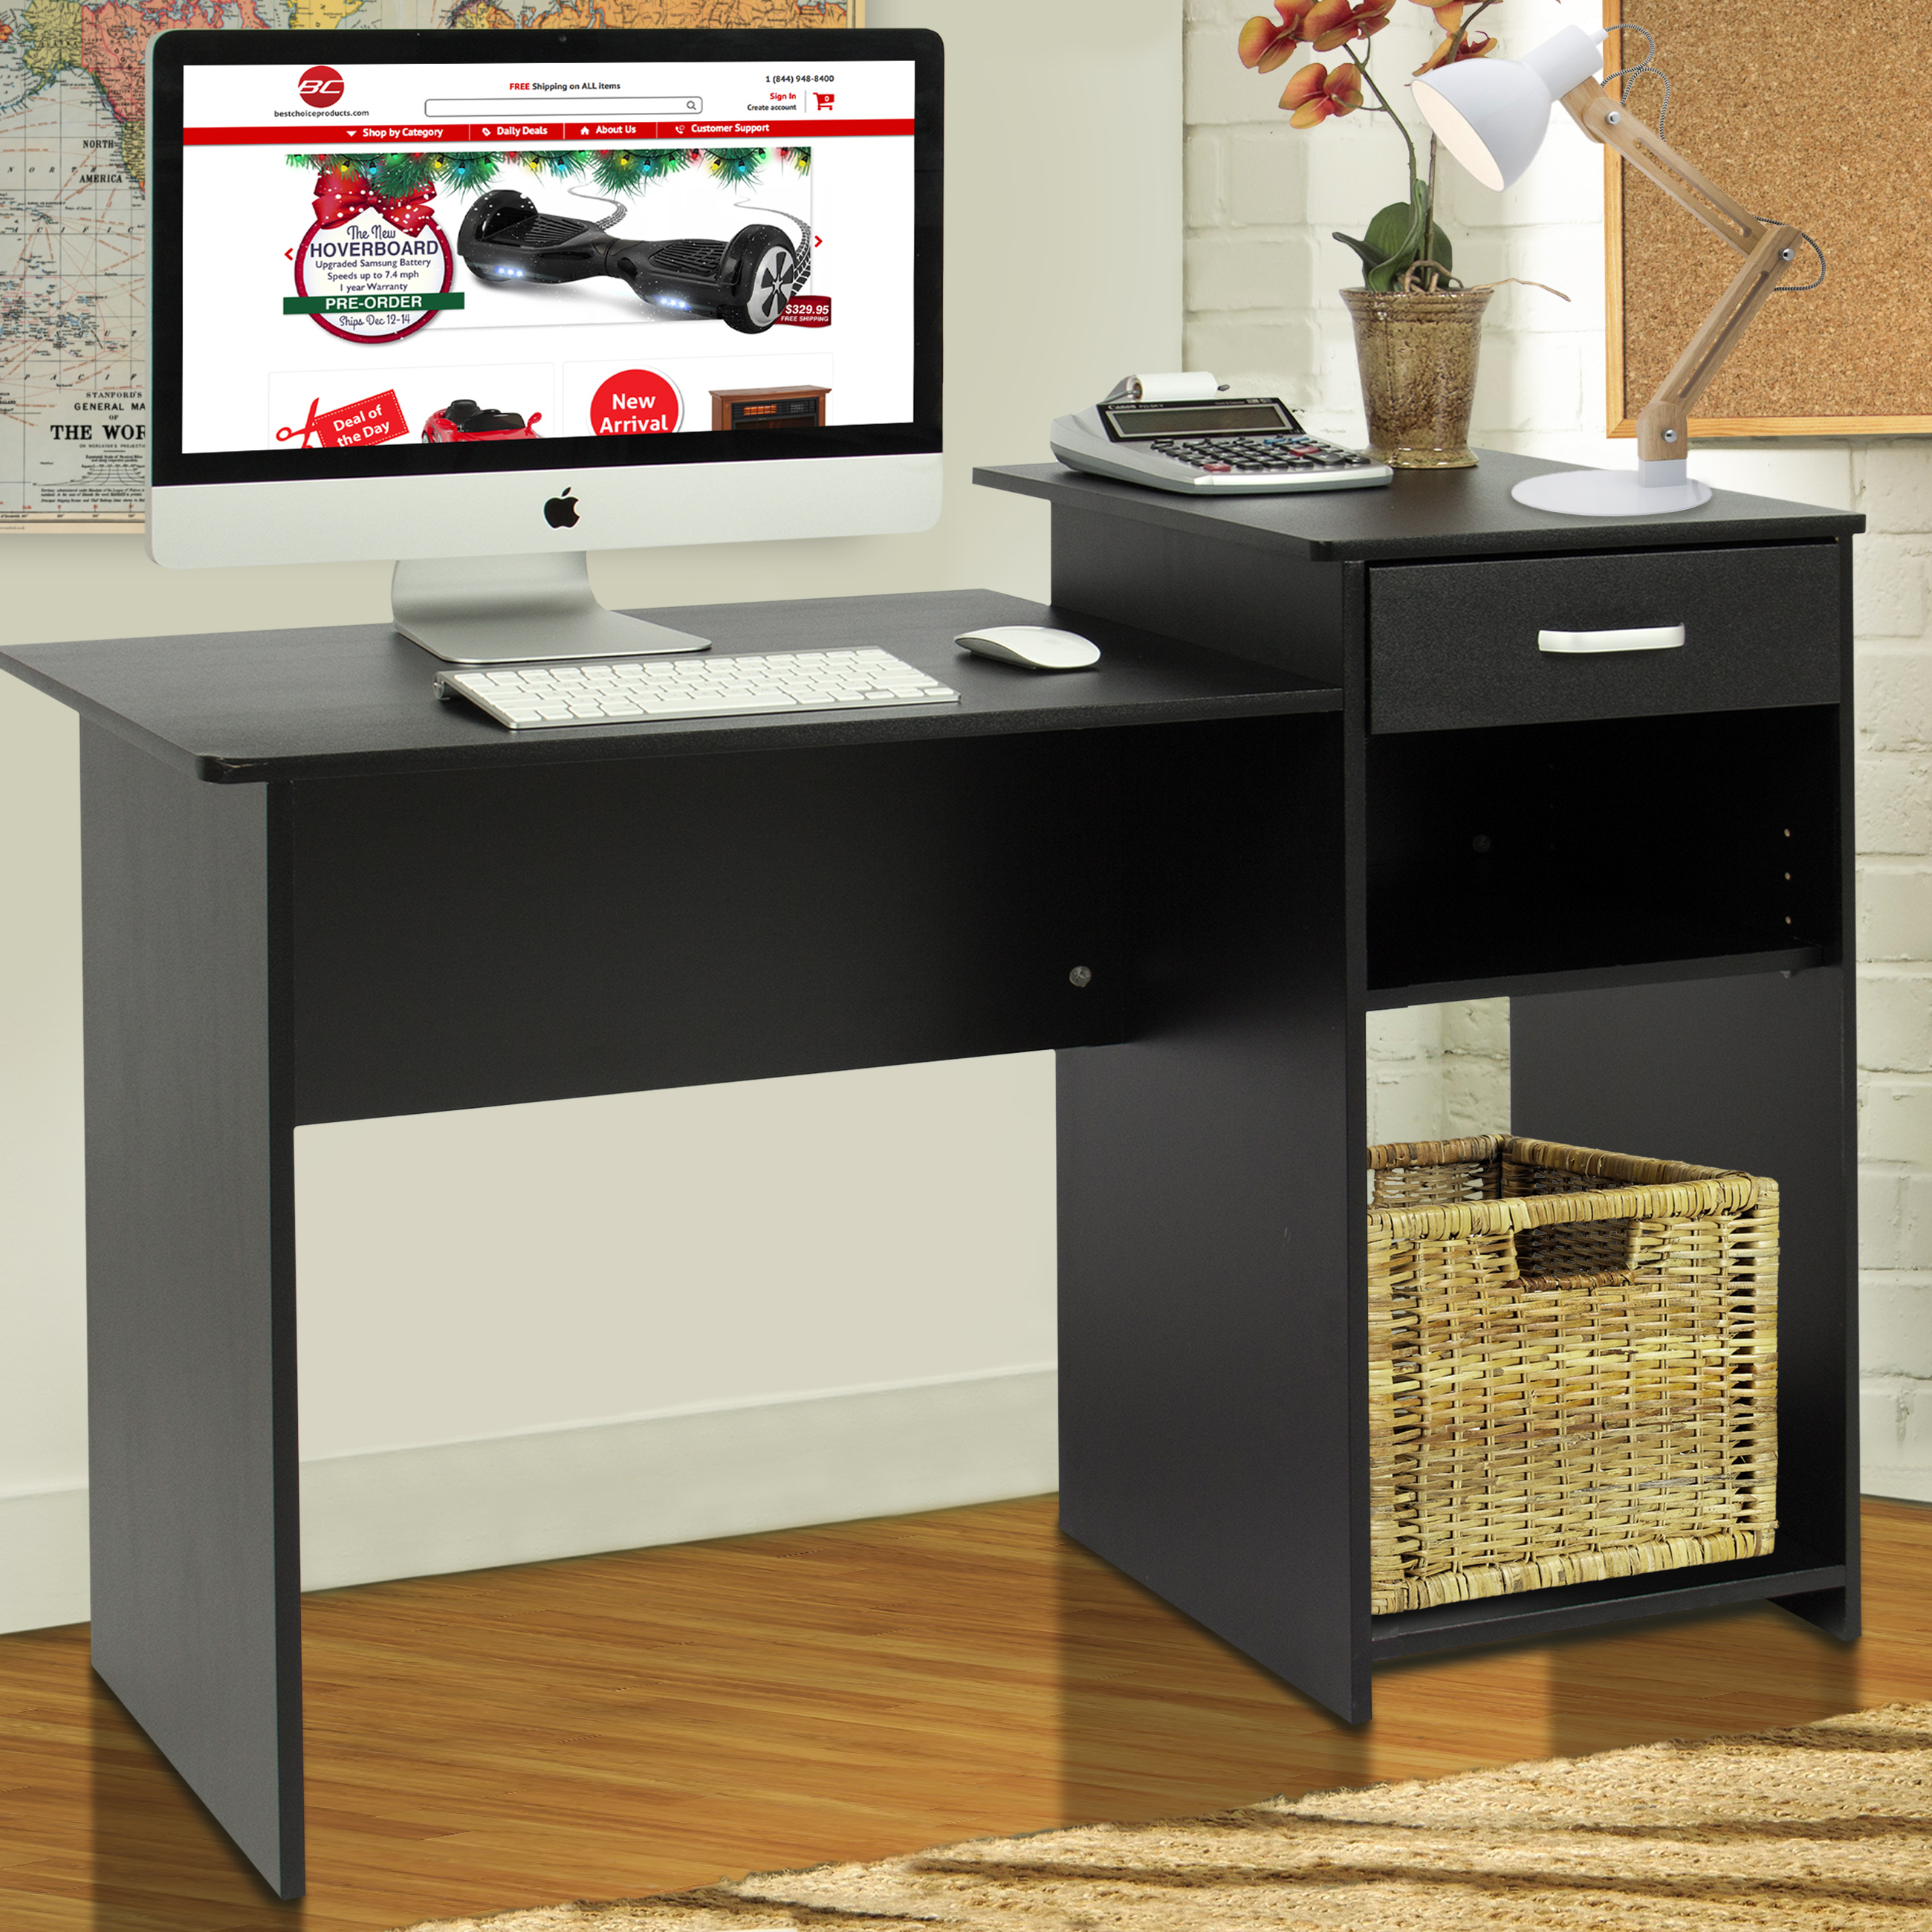 Astounding Student Computer Desk Home Office Wood Laptop Table Study Largest Home Design Picture Inspirations Pitcheantrous